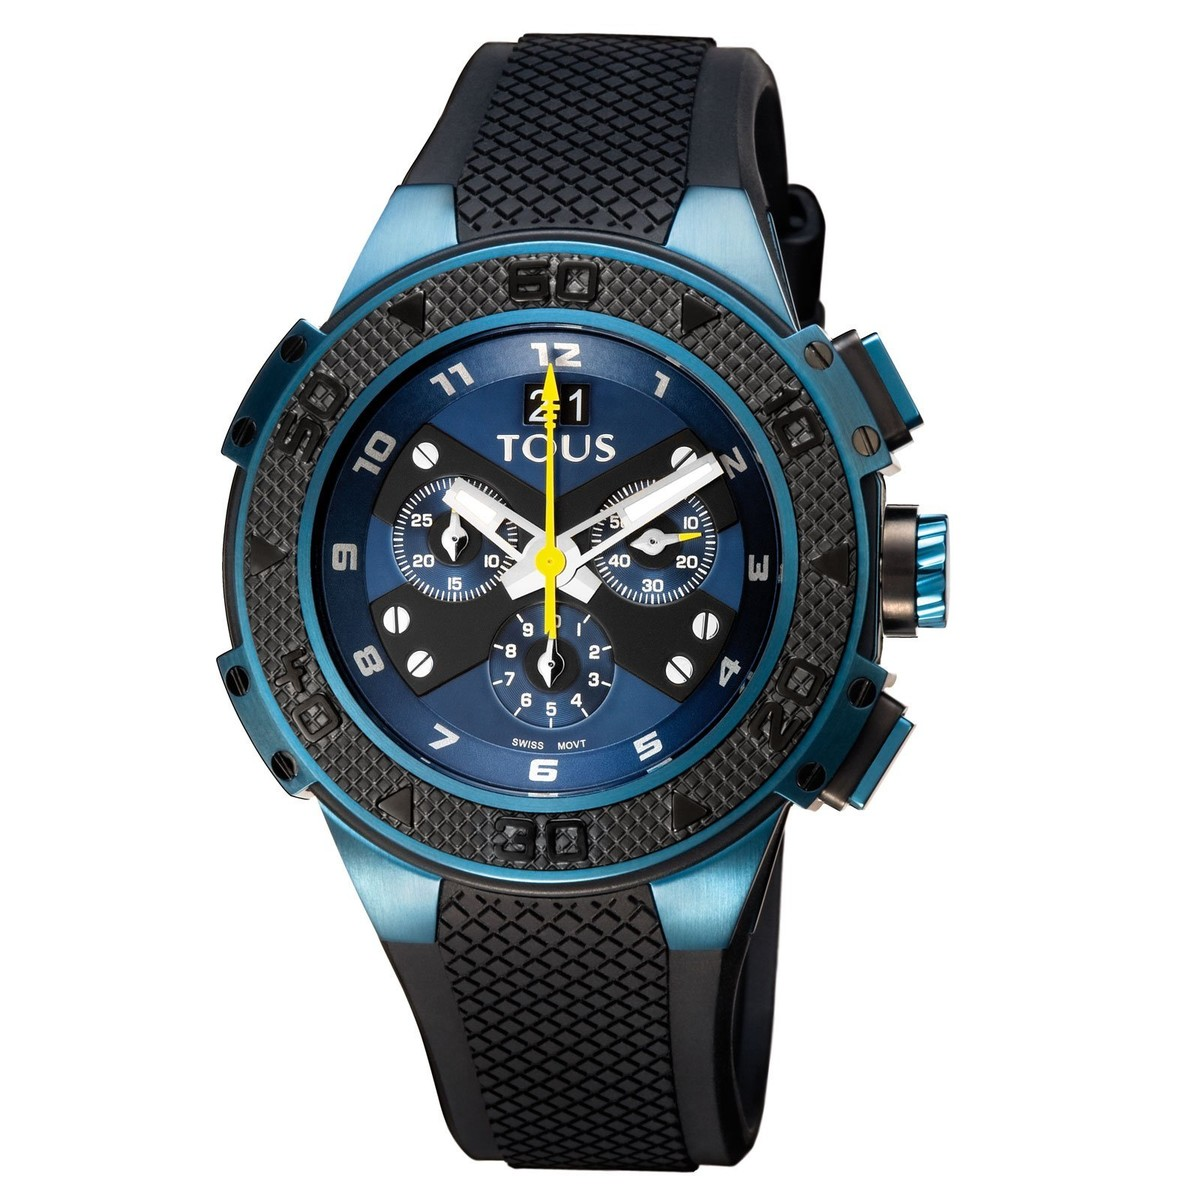 Two-tone blue/black IP Steel Xtous Watch with black Silicone strap